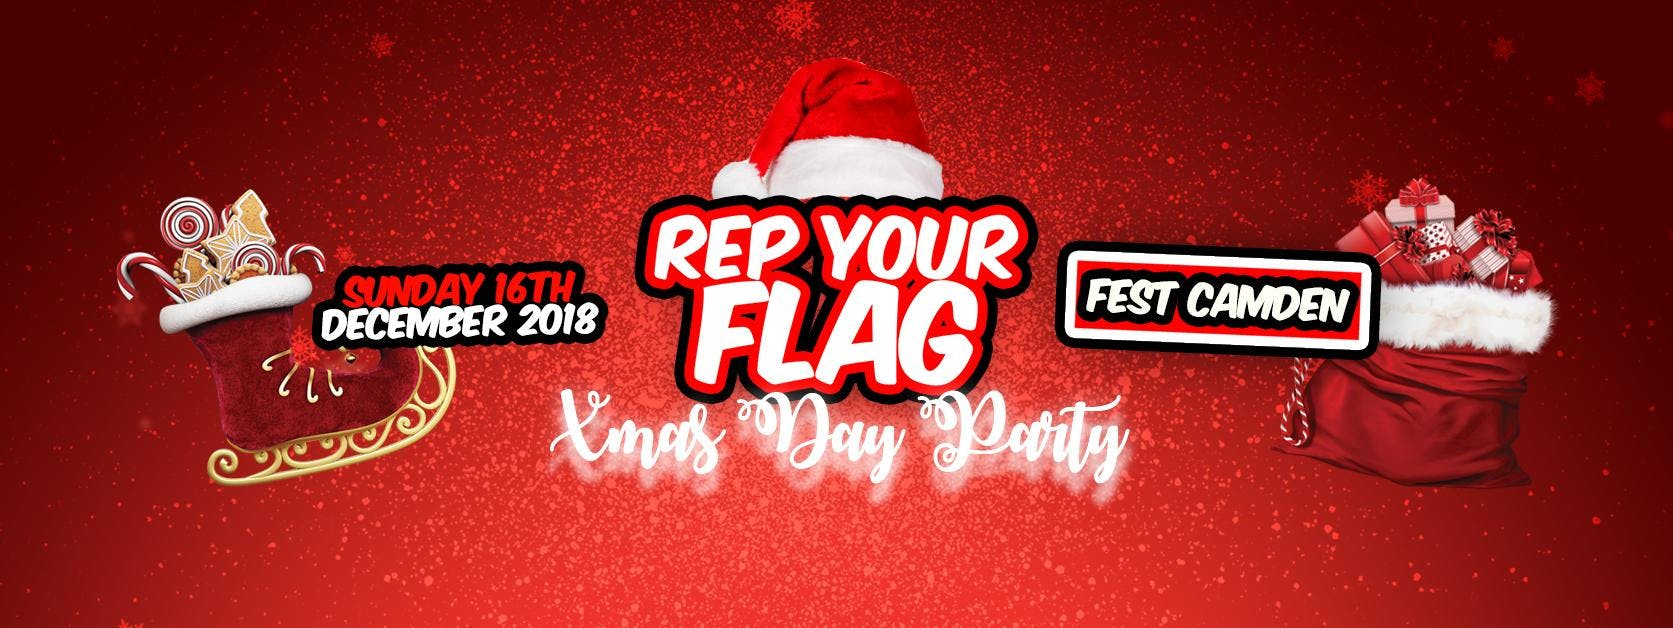 Rep Your Flag Day Party - Xmas Edition